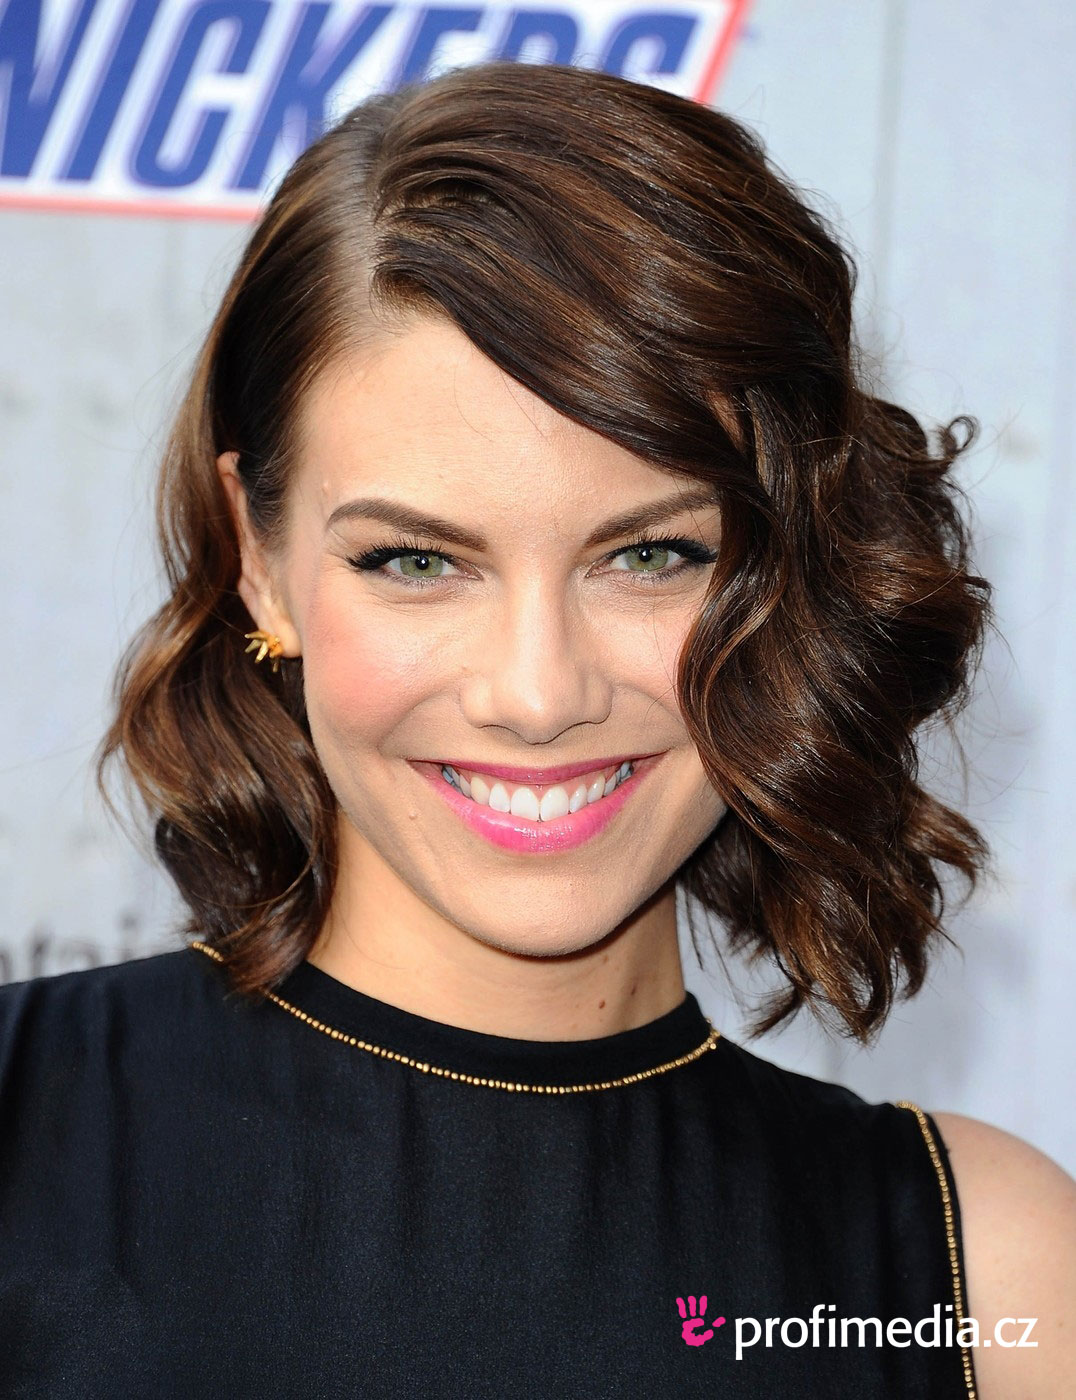 Hairstyle for short hair for party